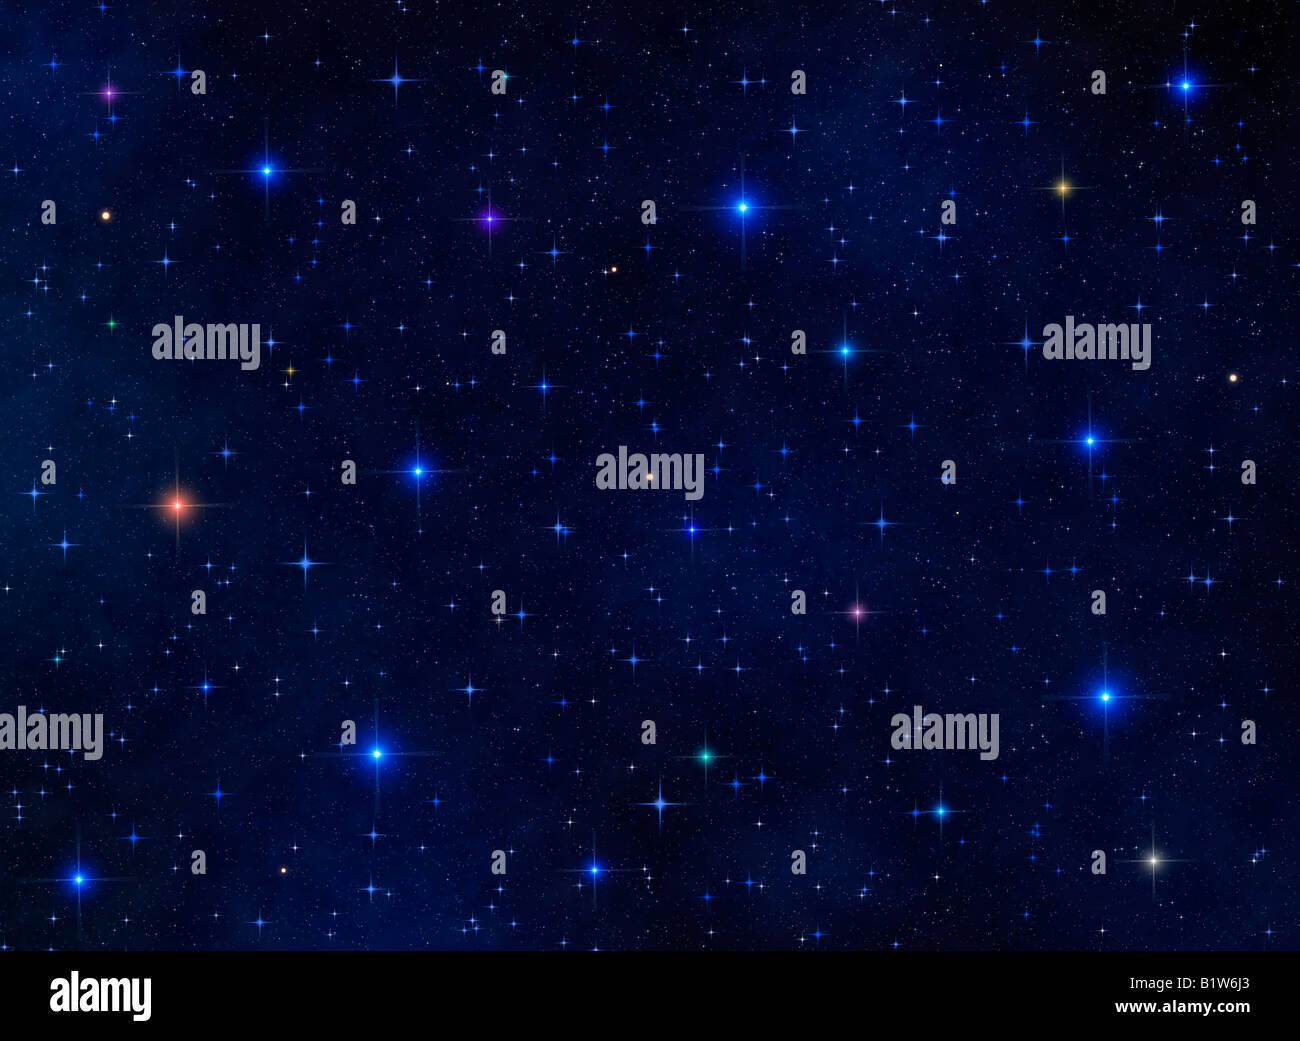 Universe view illustration - Stock Image